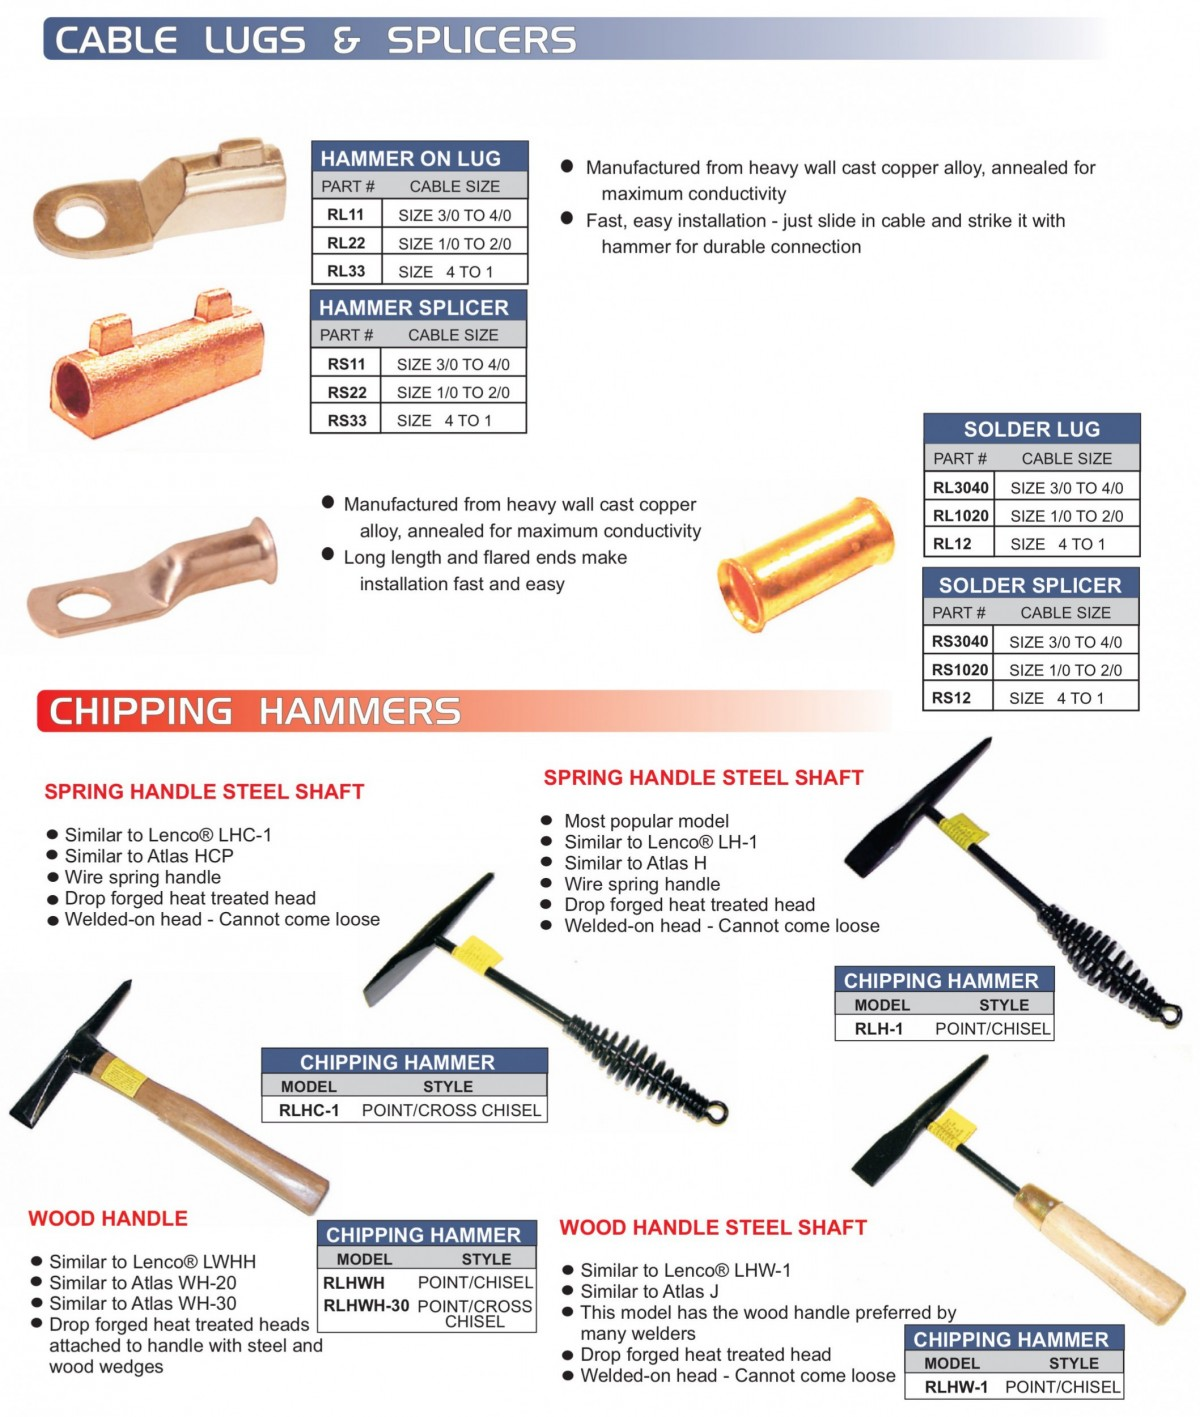 Cable Lugs, Chipping Hammers